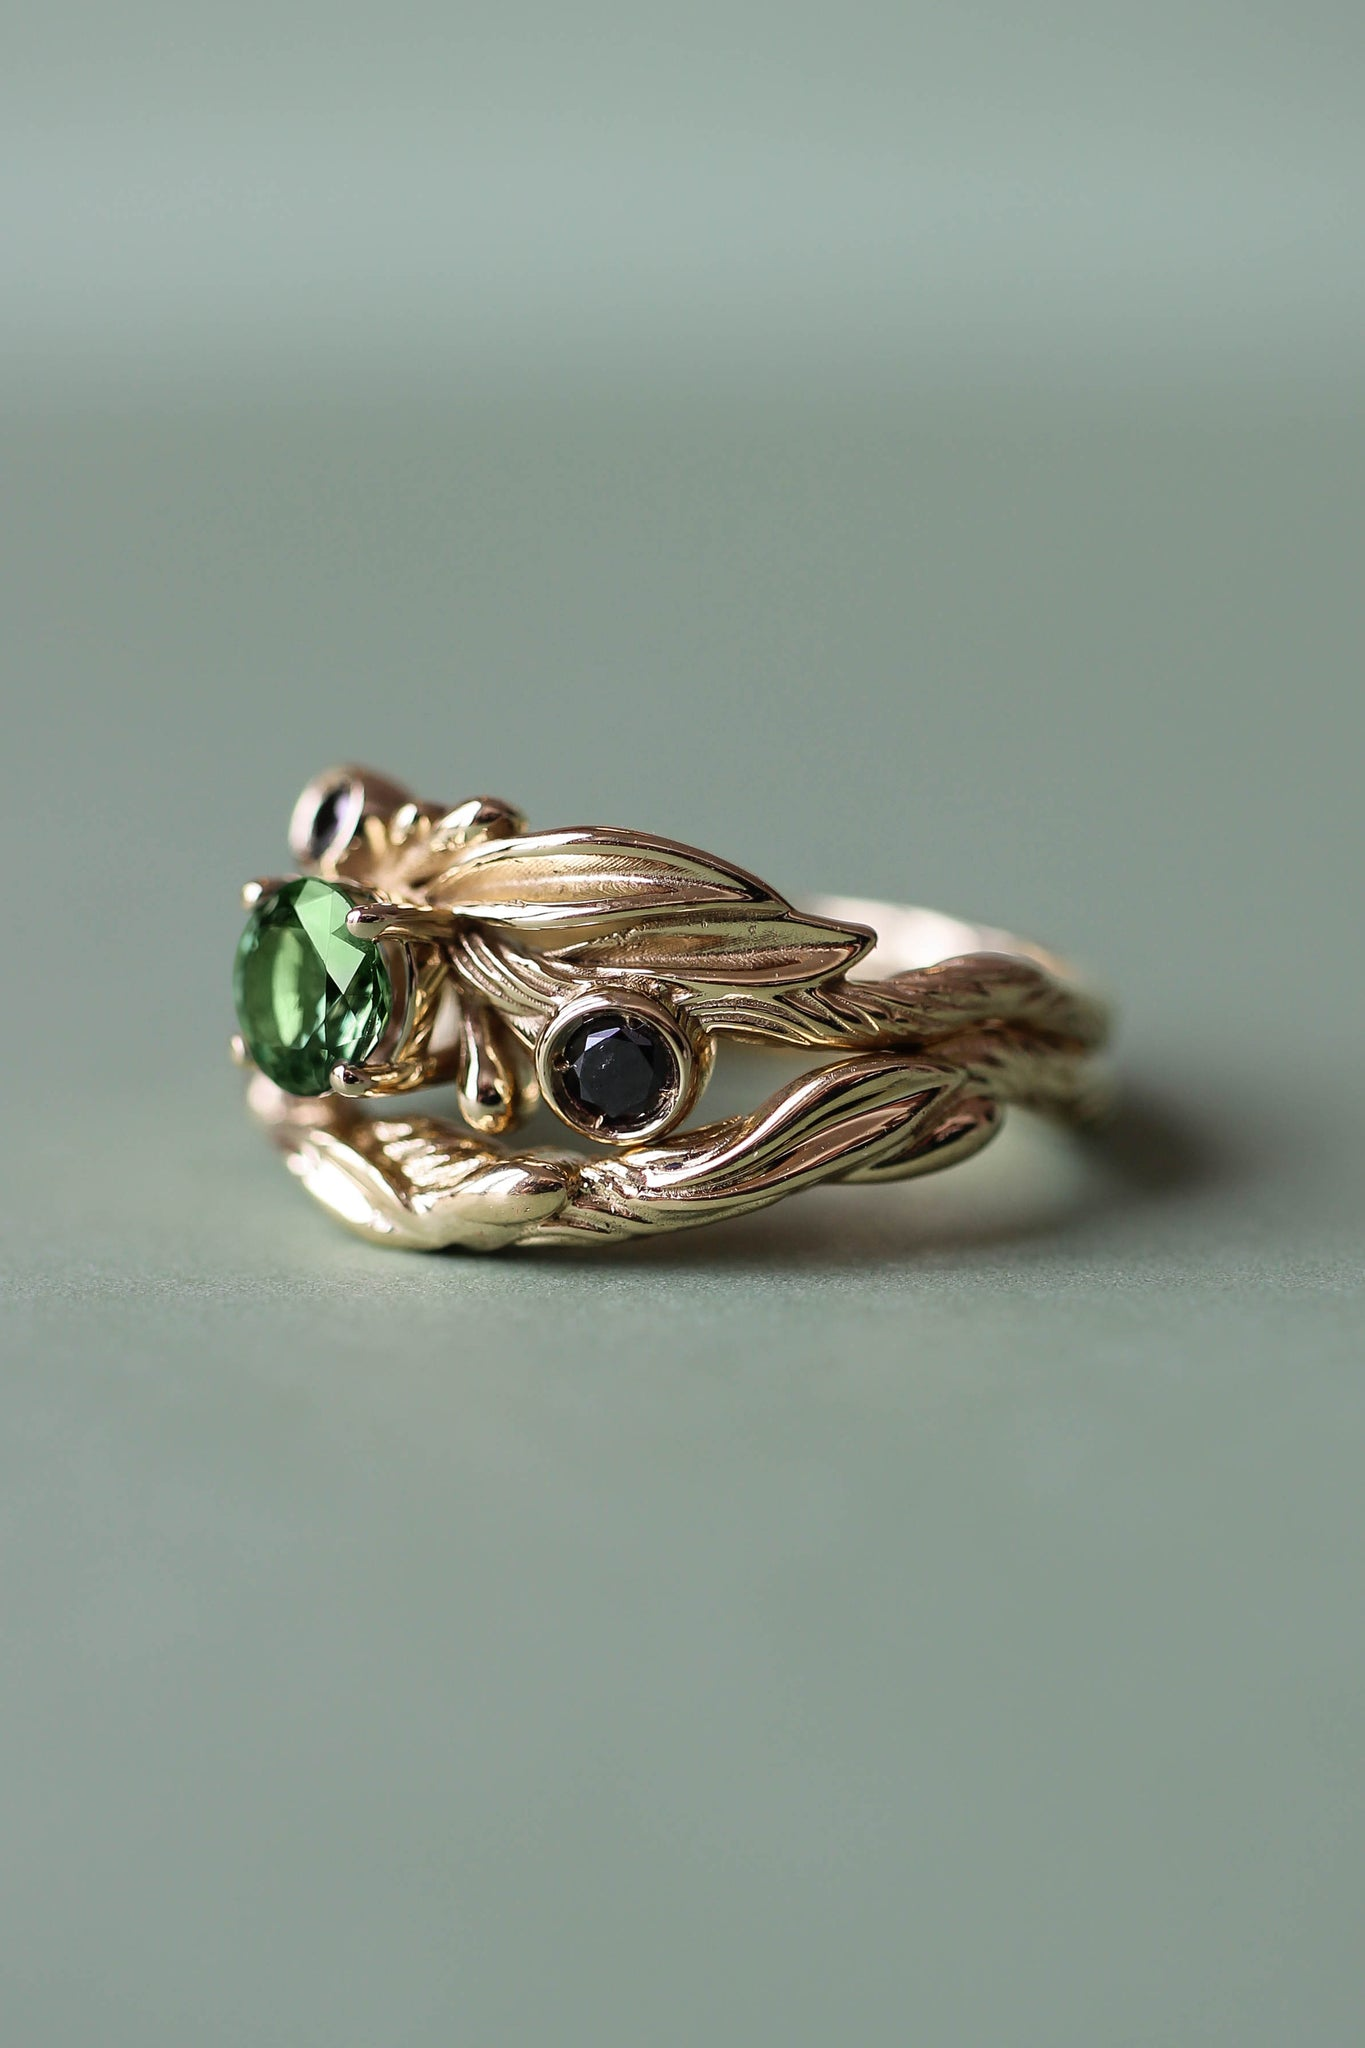 Bridal ring set with green tourmaline and black diamonds / Olivia - Eden Garden Jewelry